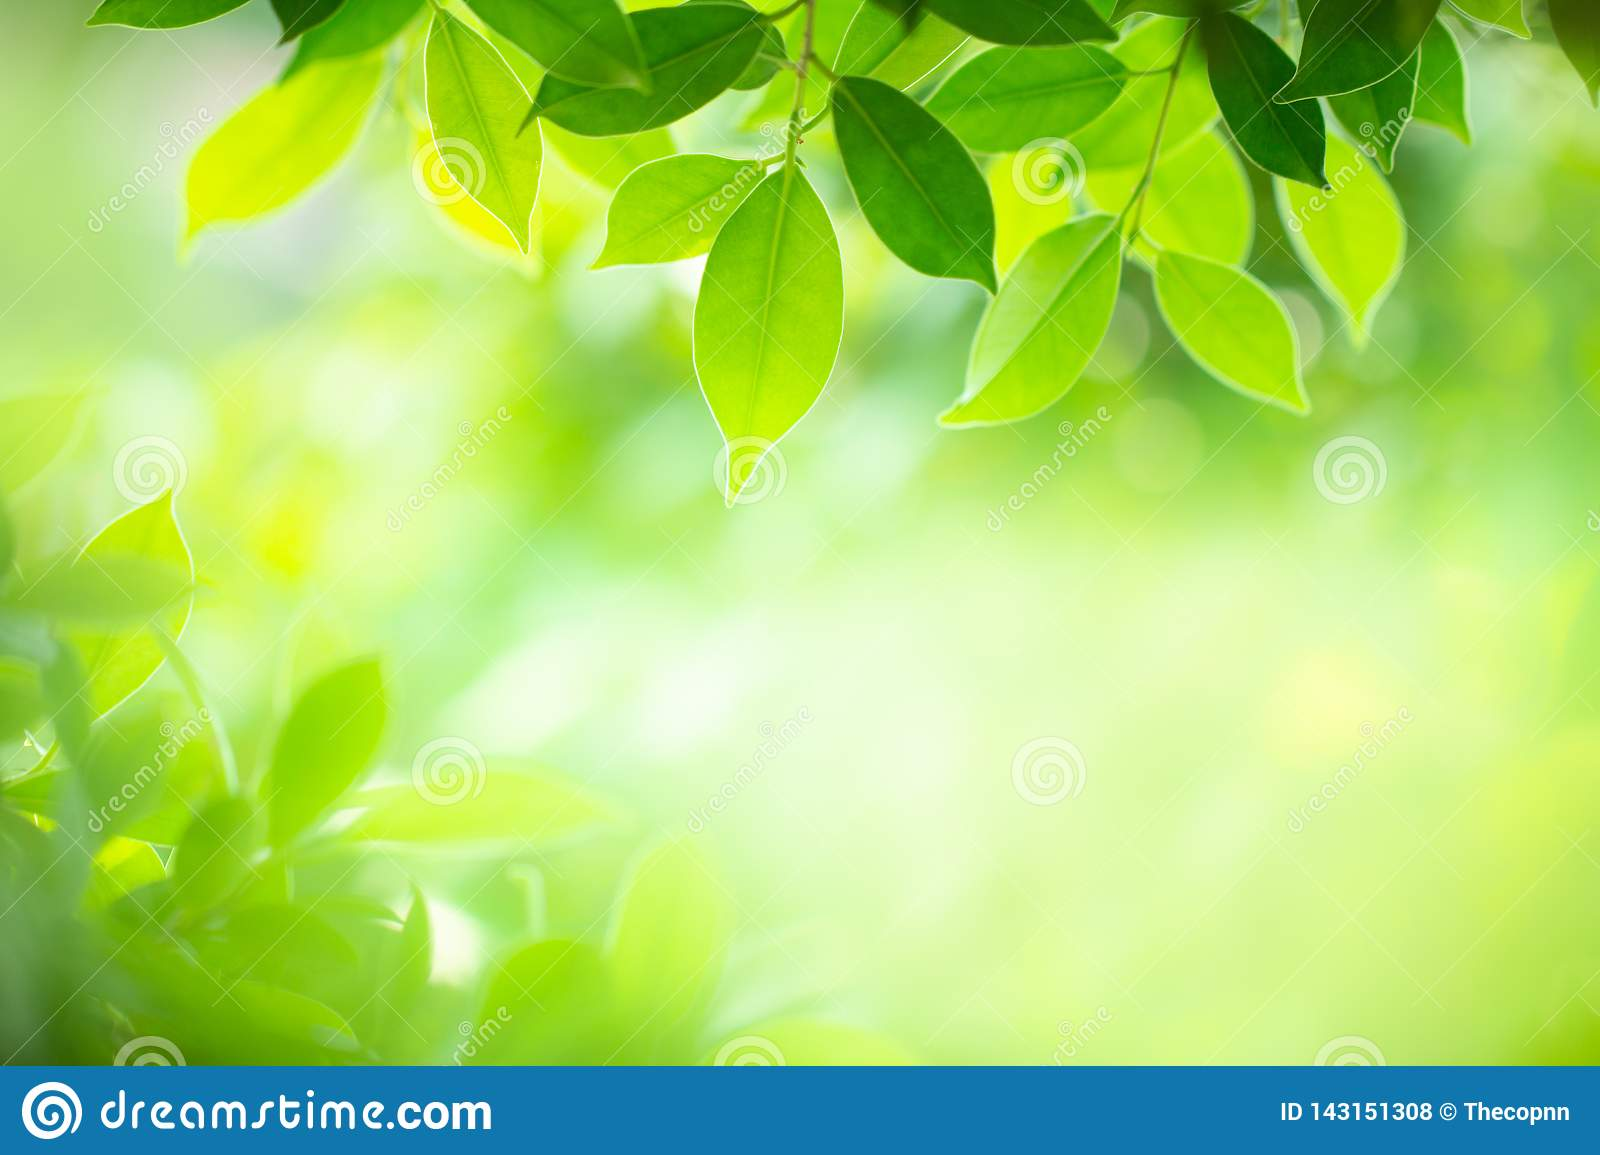 Closeup Nature View Of Green Leaf On Blurred Background In Selective Focus  Stock Photo - Image Of Bright, Botany: 143151308